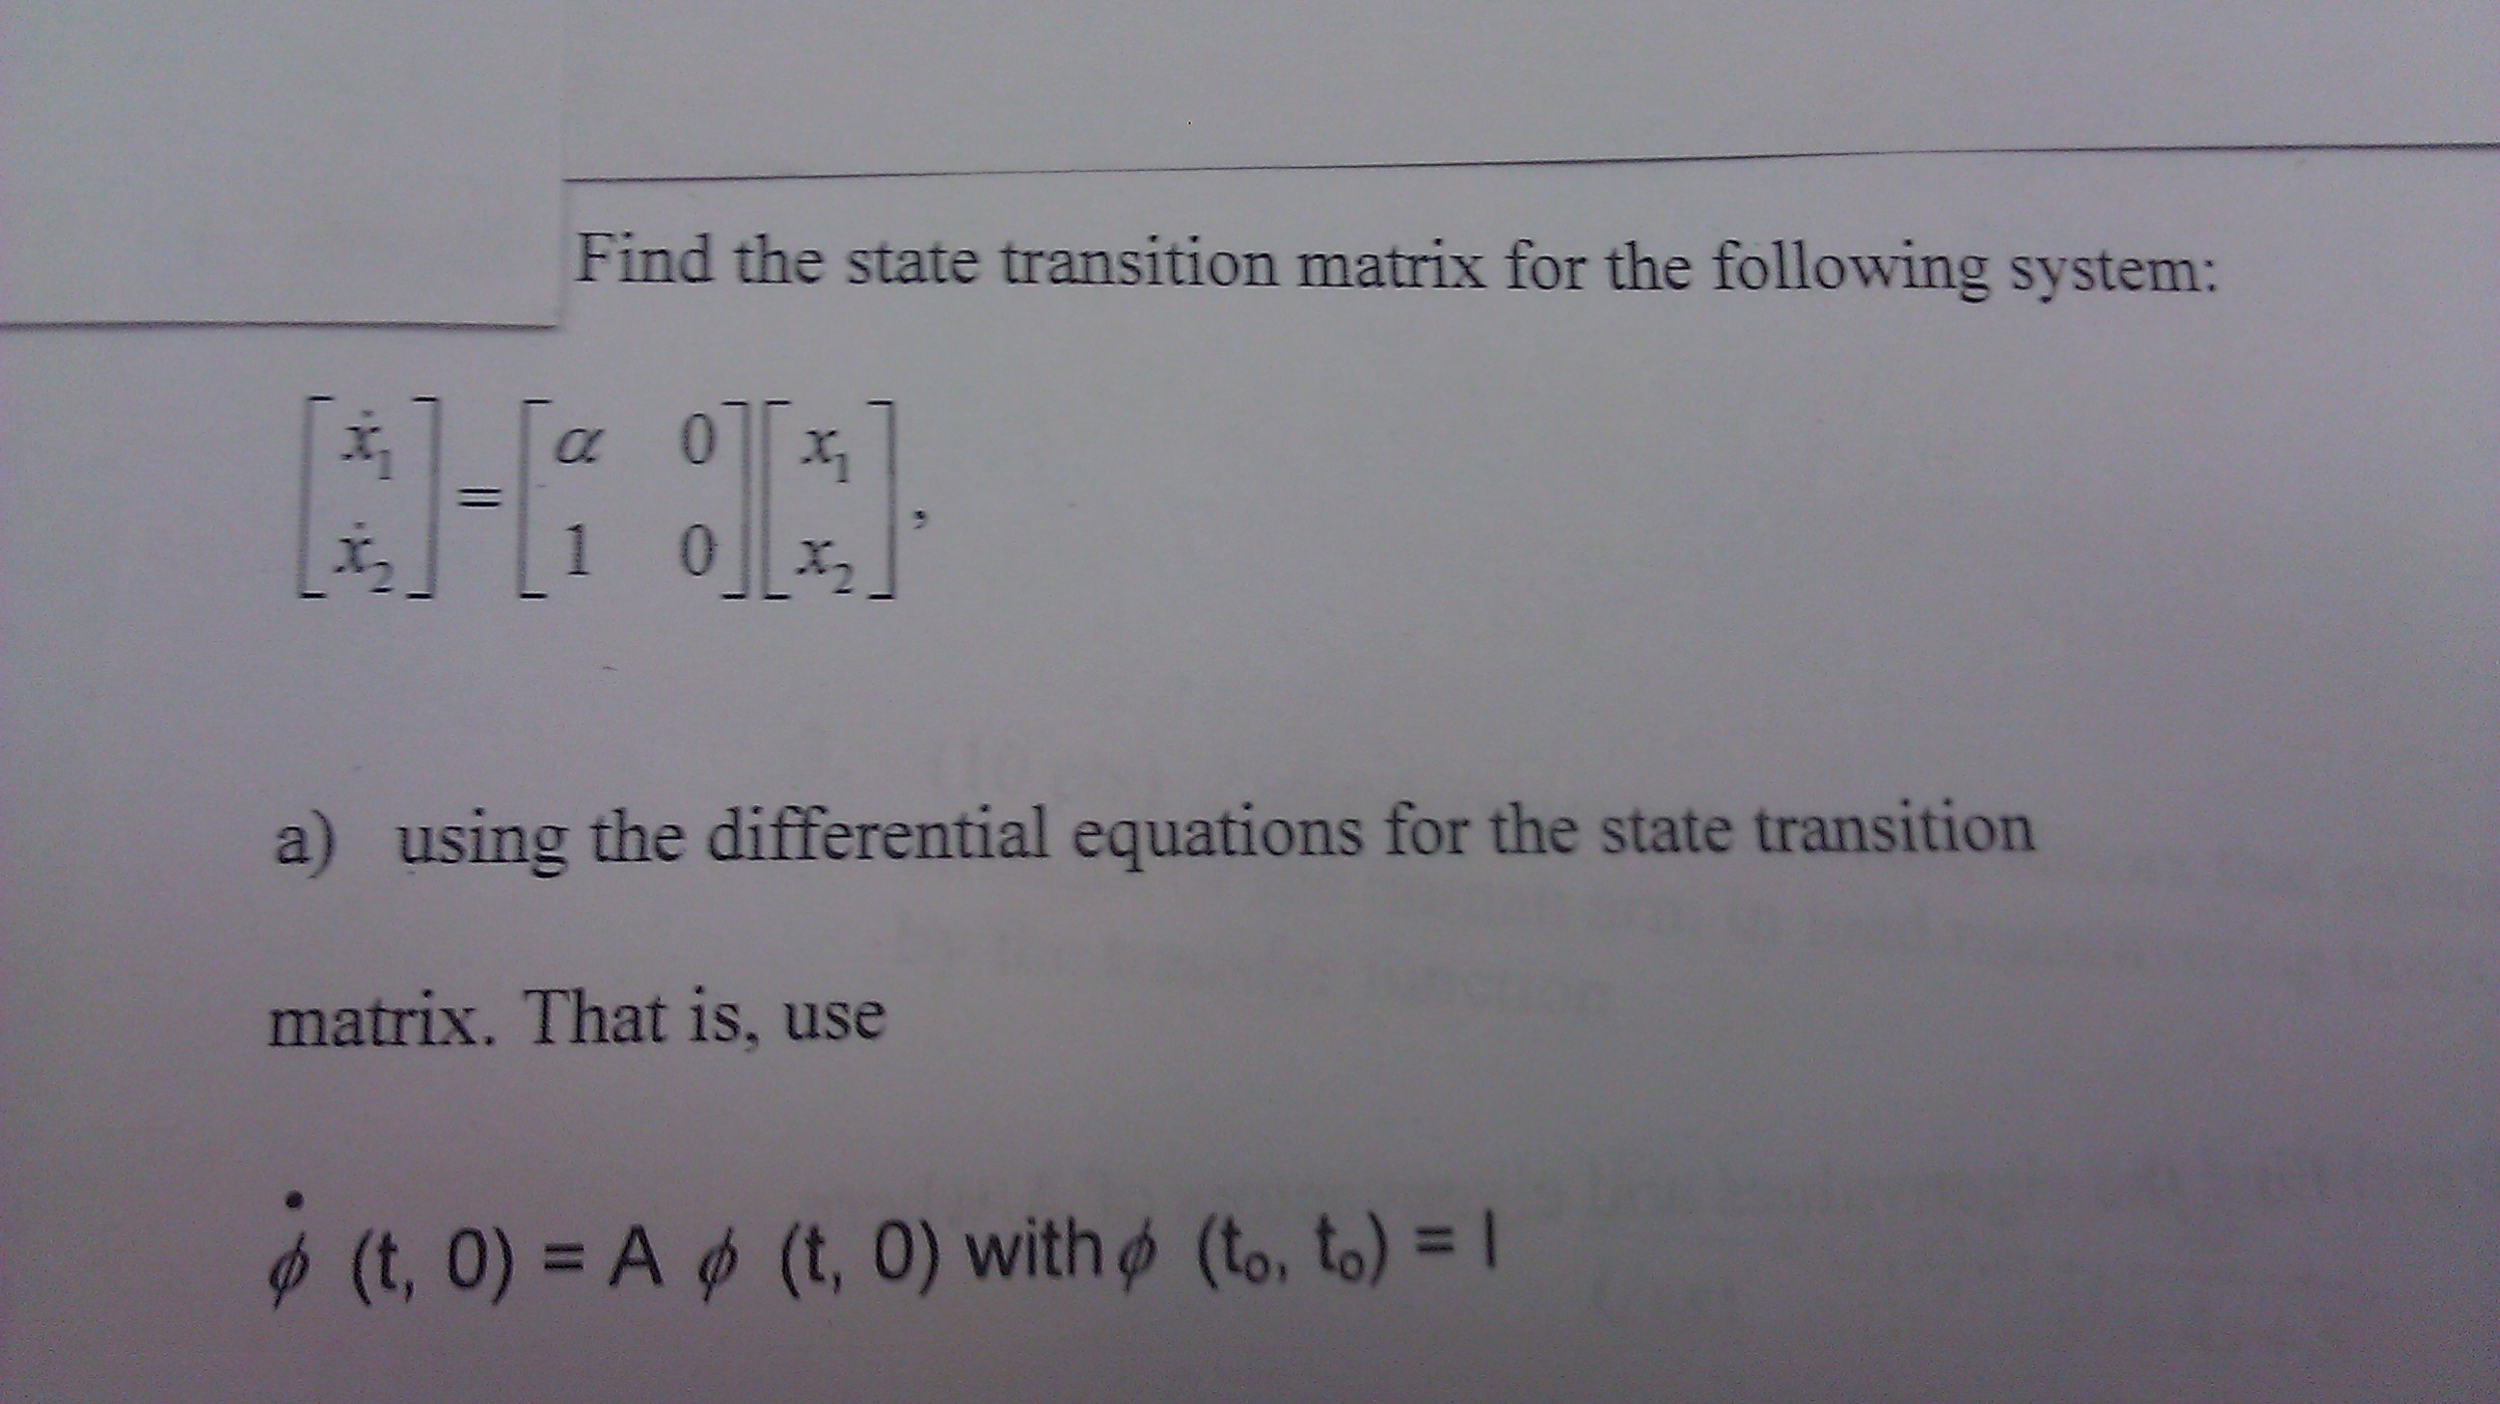 Find the state transition matrix for the following